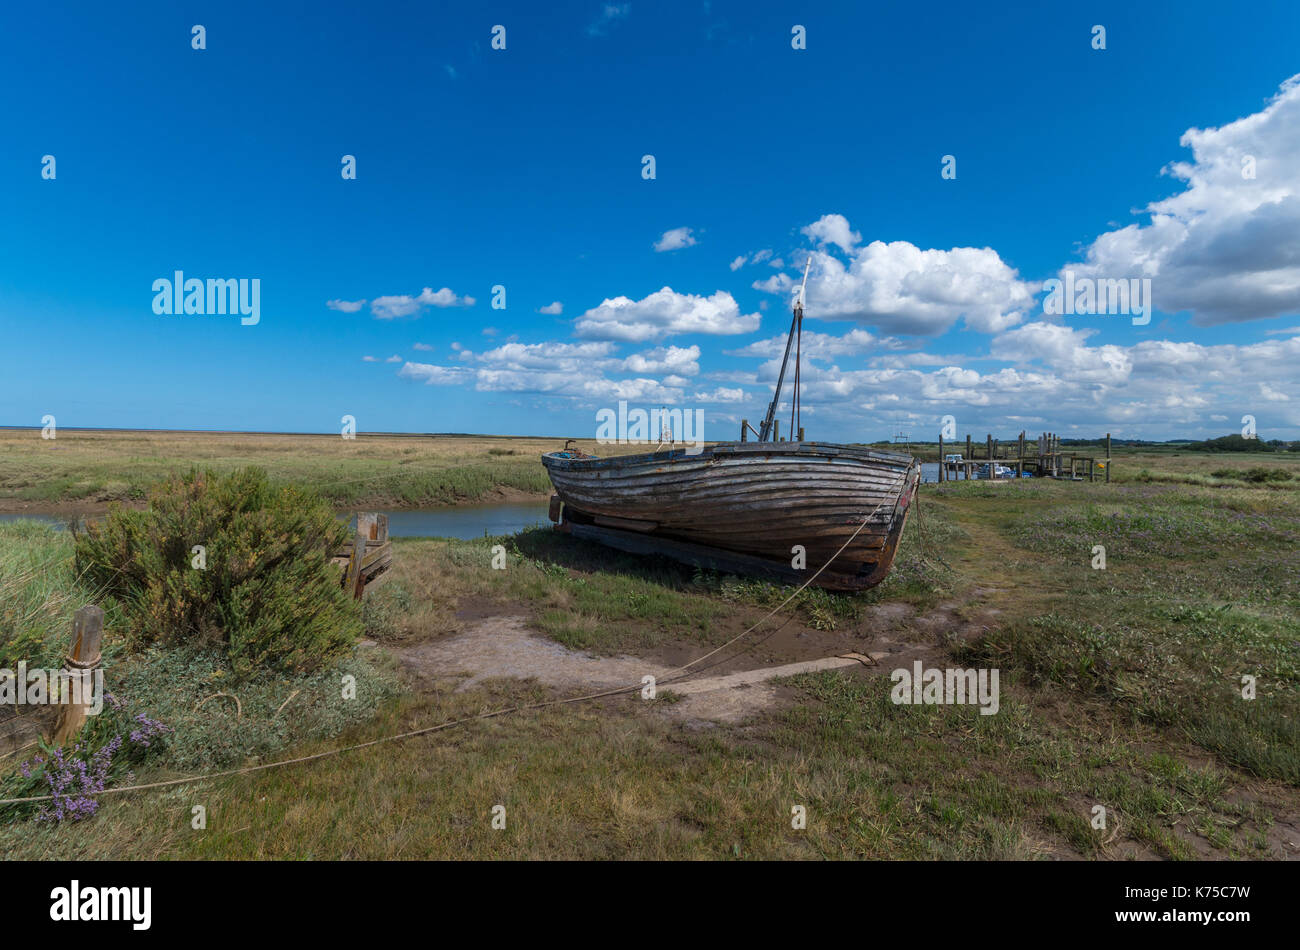 Wrecked boat on the tidal marshes at Thornham Harbour on the North Norfolk coast, UK. - Stock Image